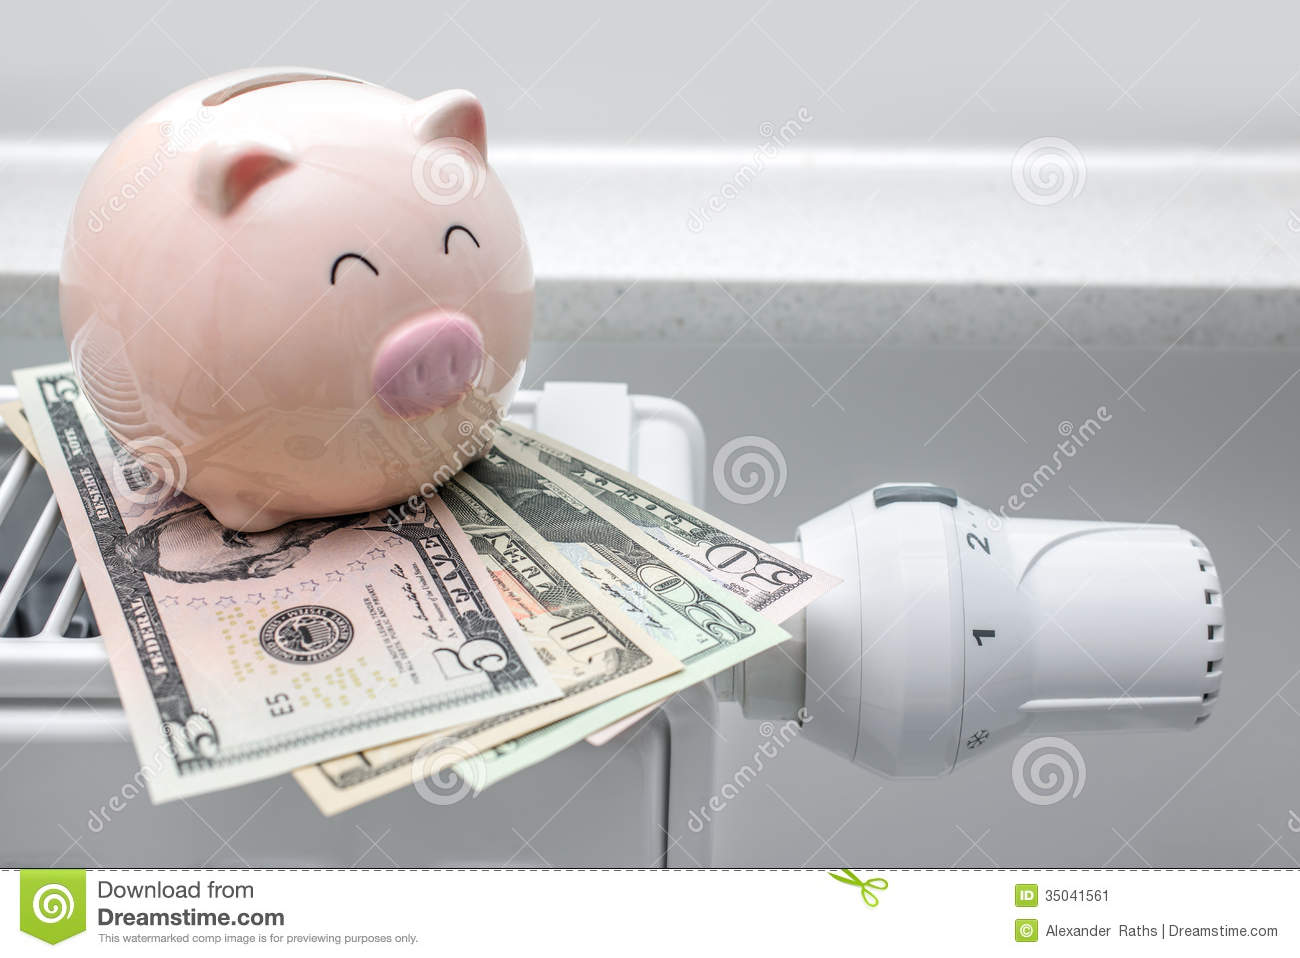 Is Wiring Money Expensive Free Diagram For You Bank To Heating Thermostat With Piggy And Stock Image Western Union Transfer